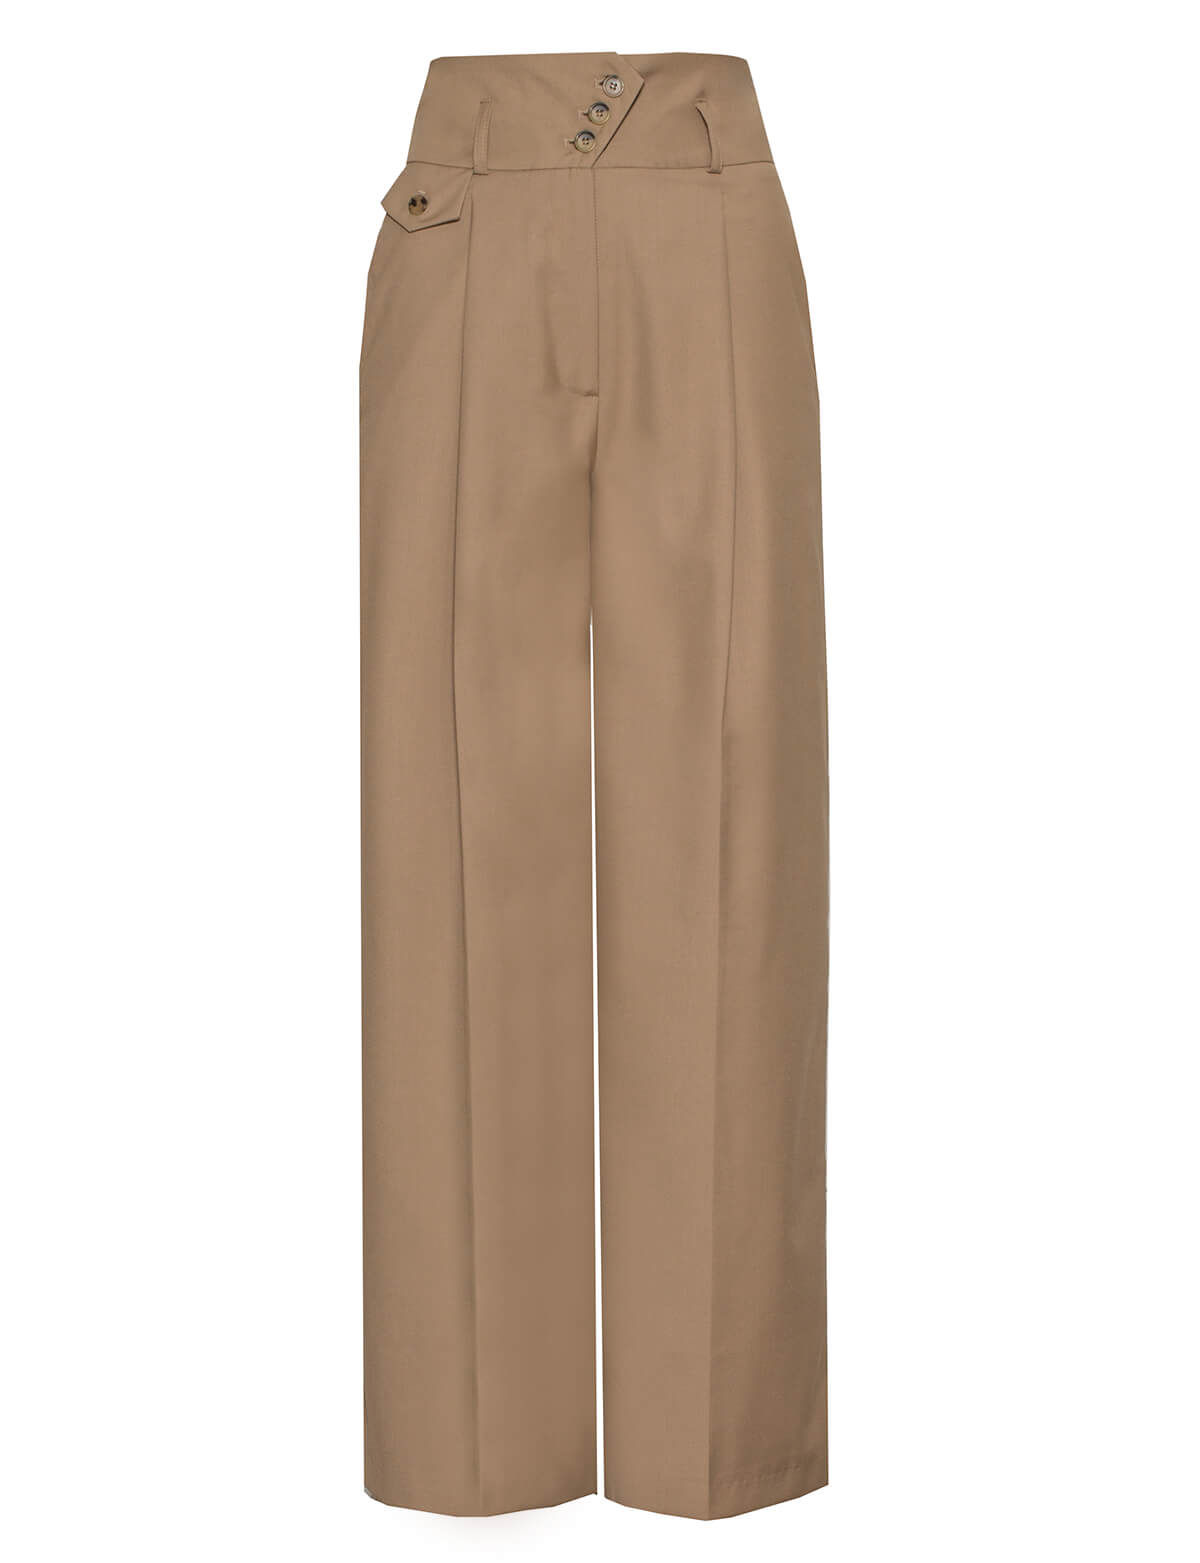 casey high waist pants